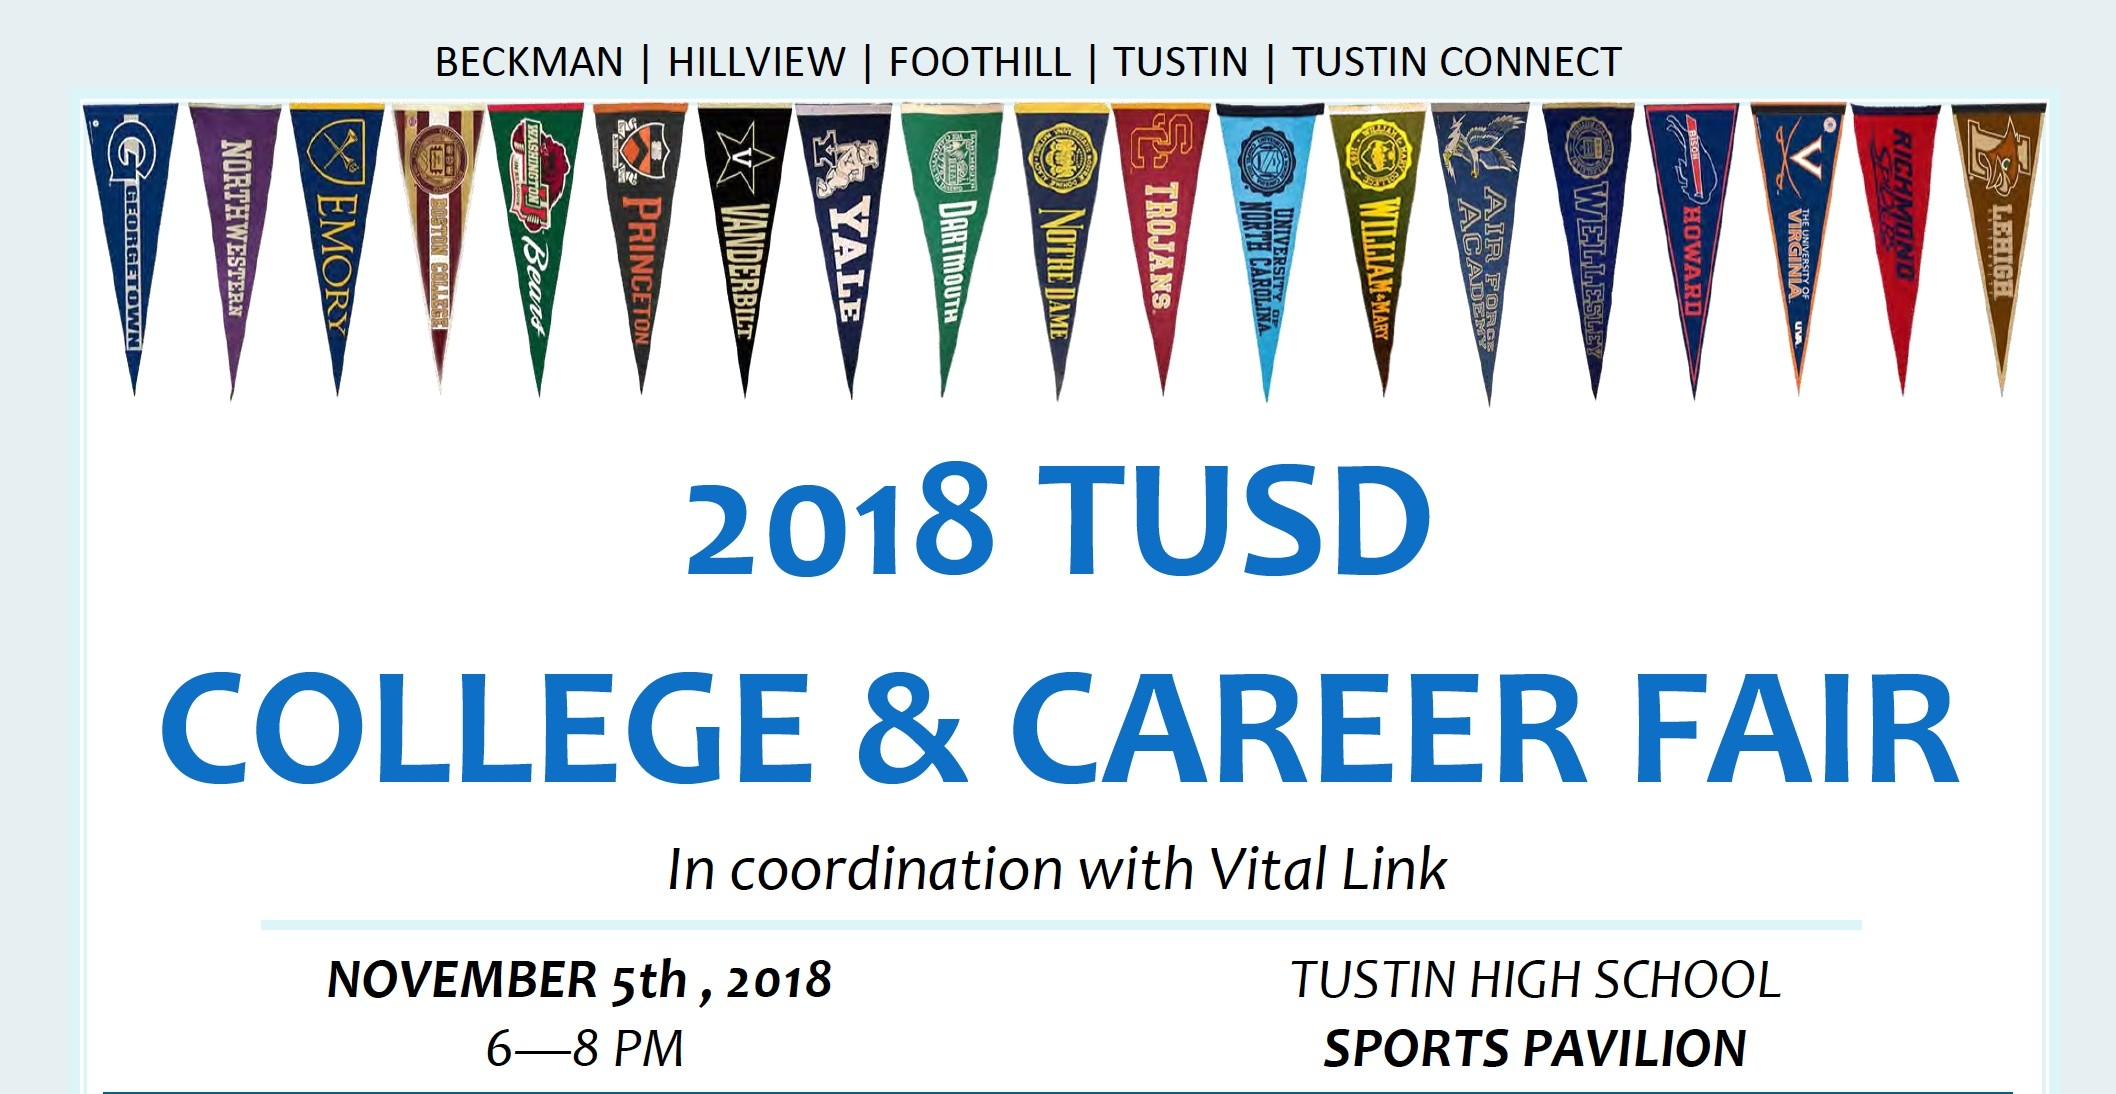 Tustin Unified School Calendar 2018 2019 Printed For Cost-Free_School Calendar Tustin Unified